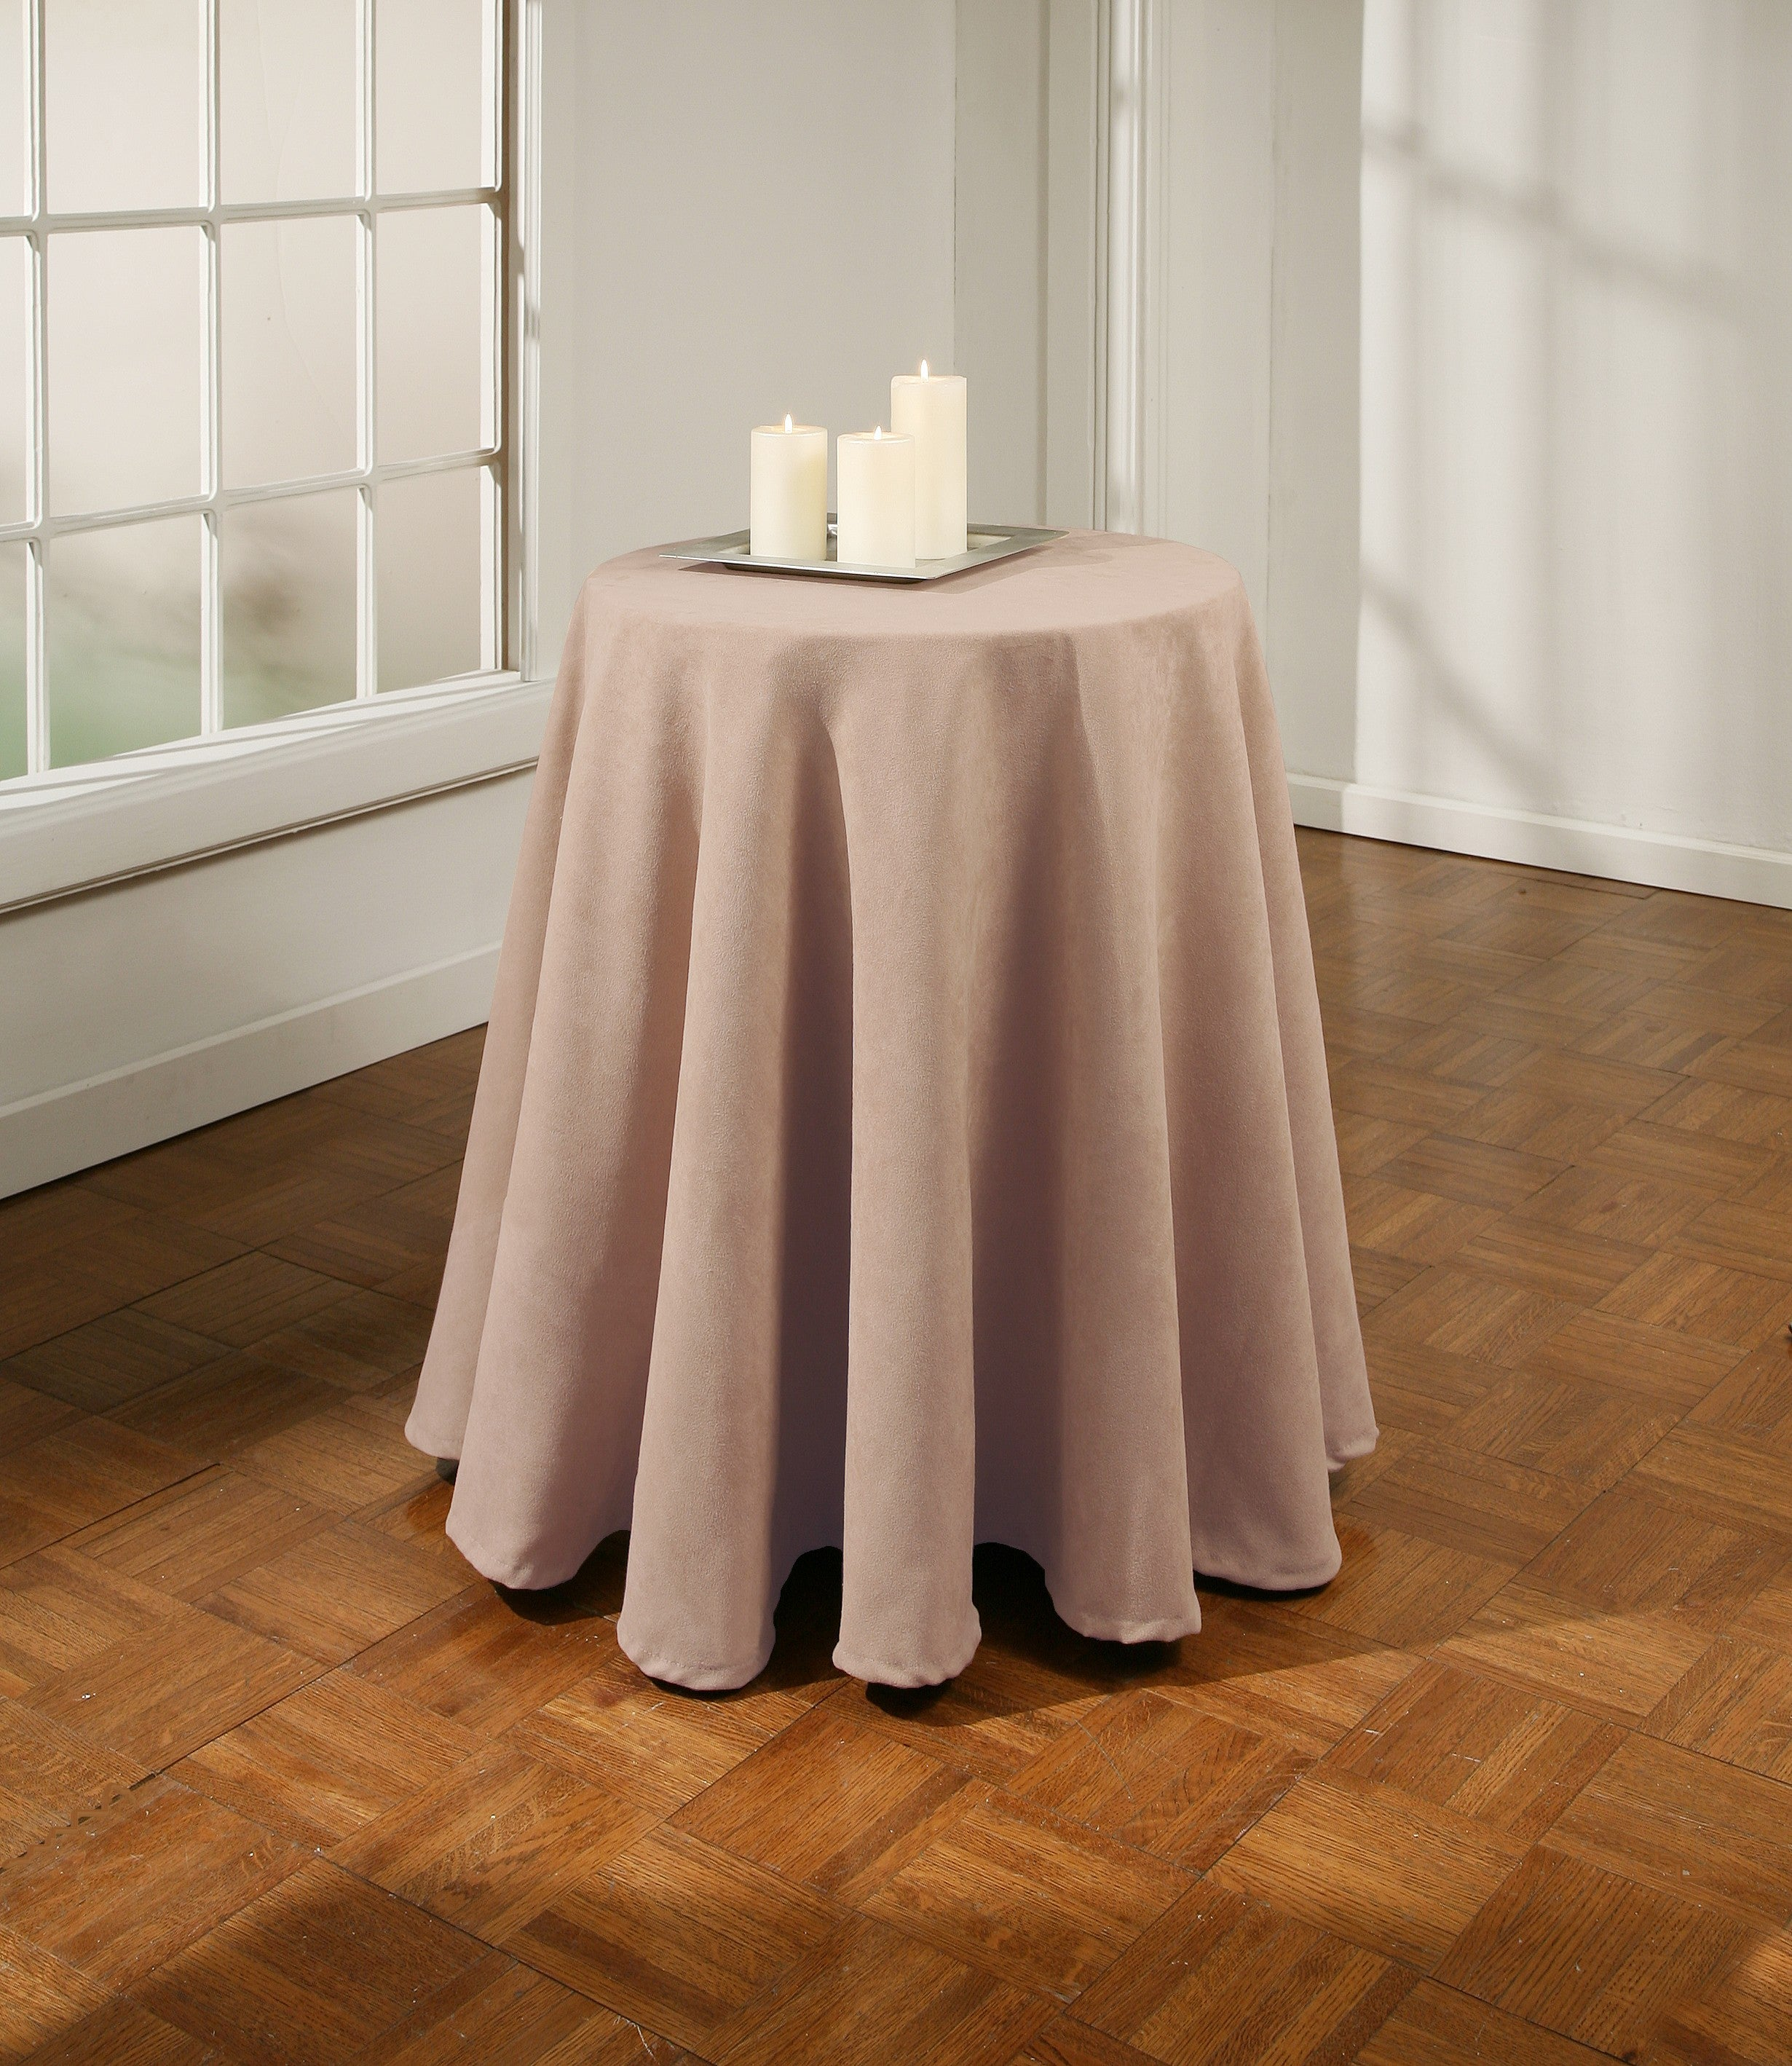 Suede 70-inch Round Tablecloth